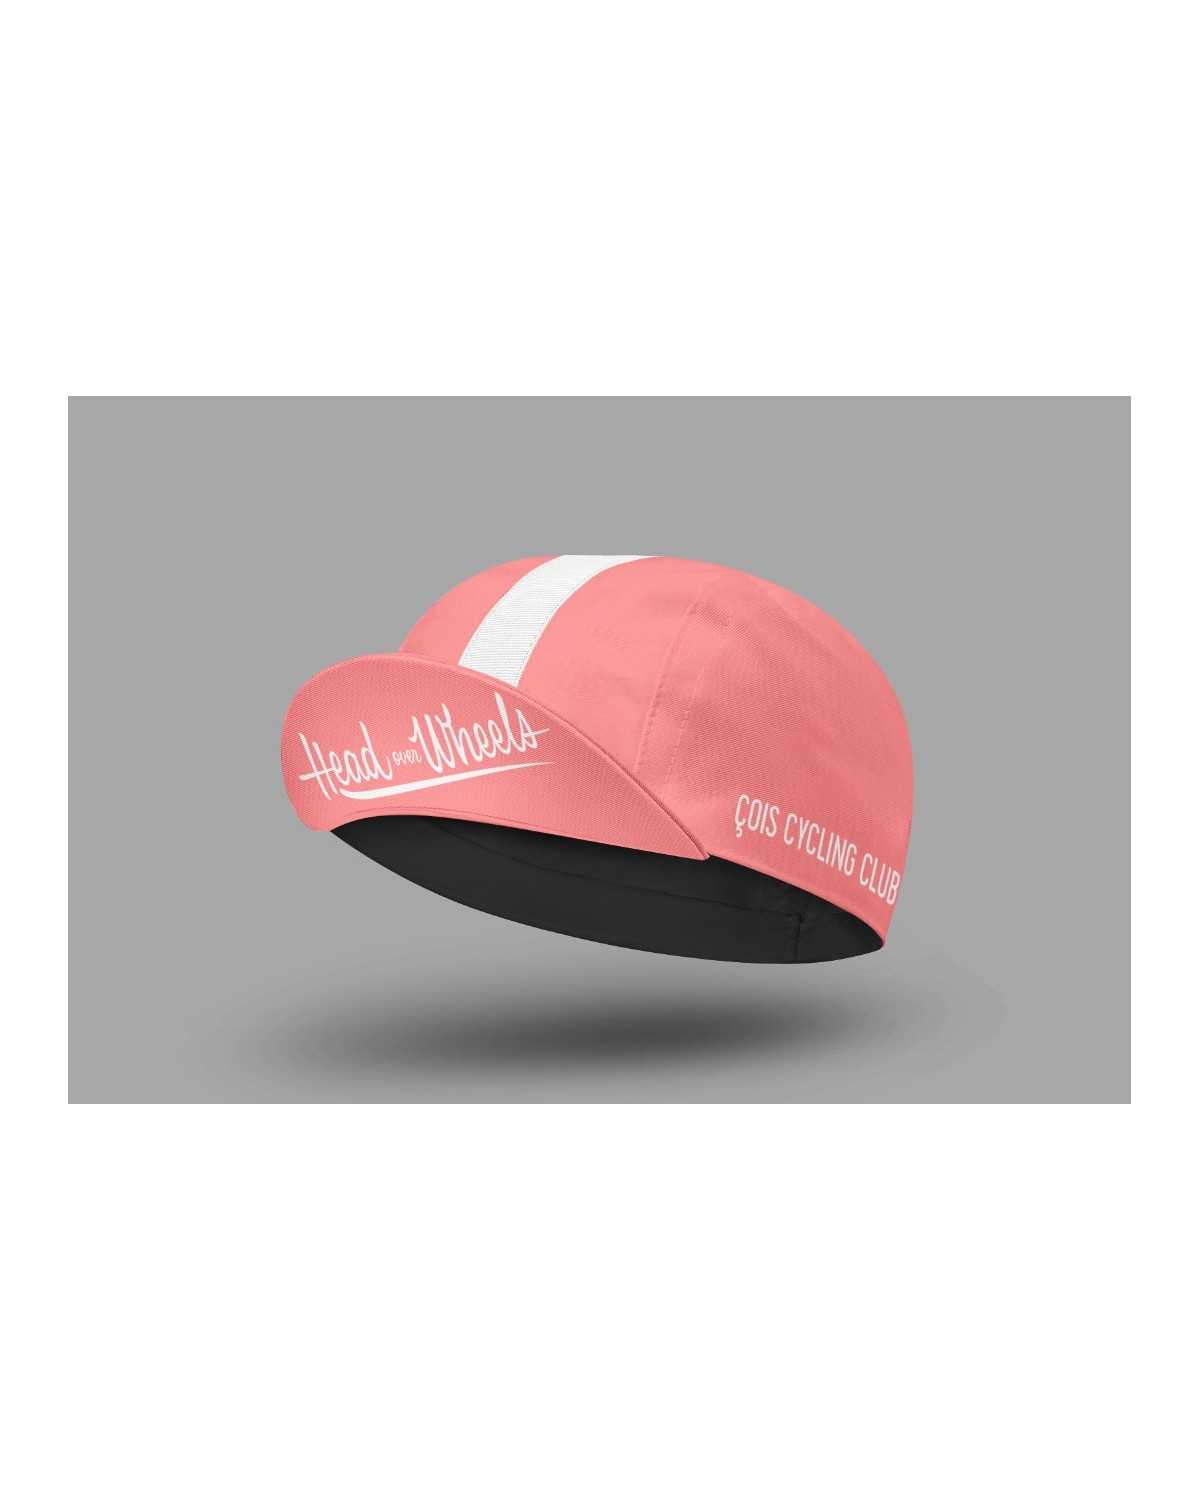 Radmütze Head over Wheels pink Cois Cycling